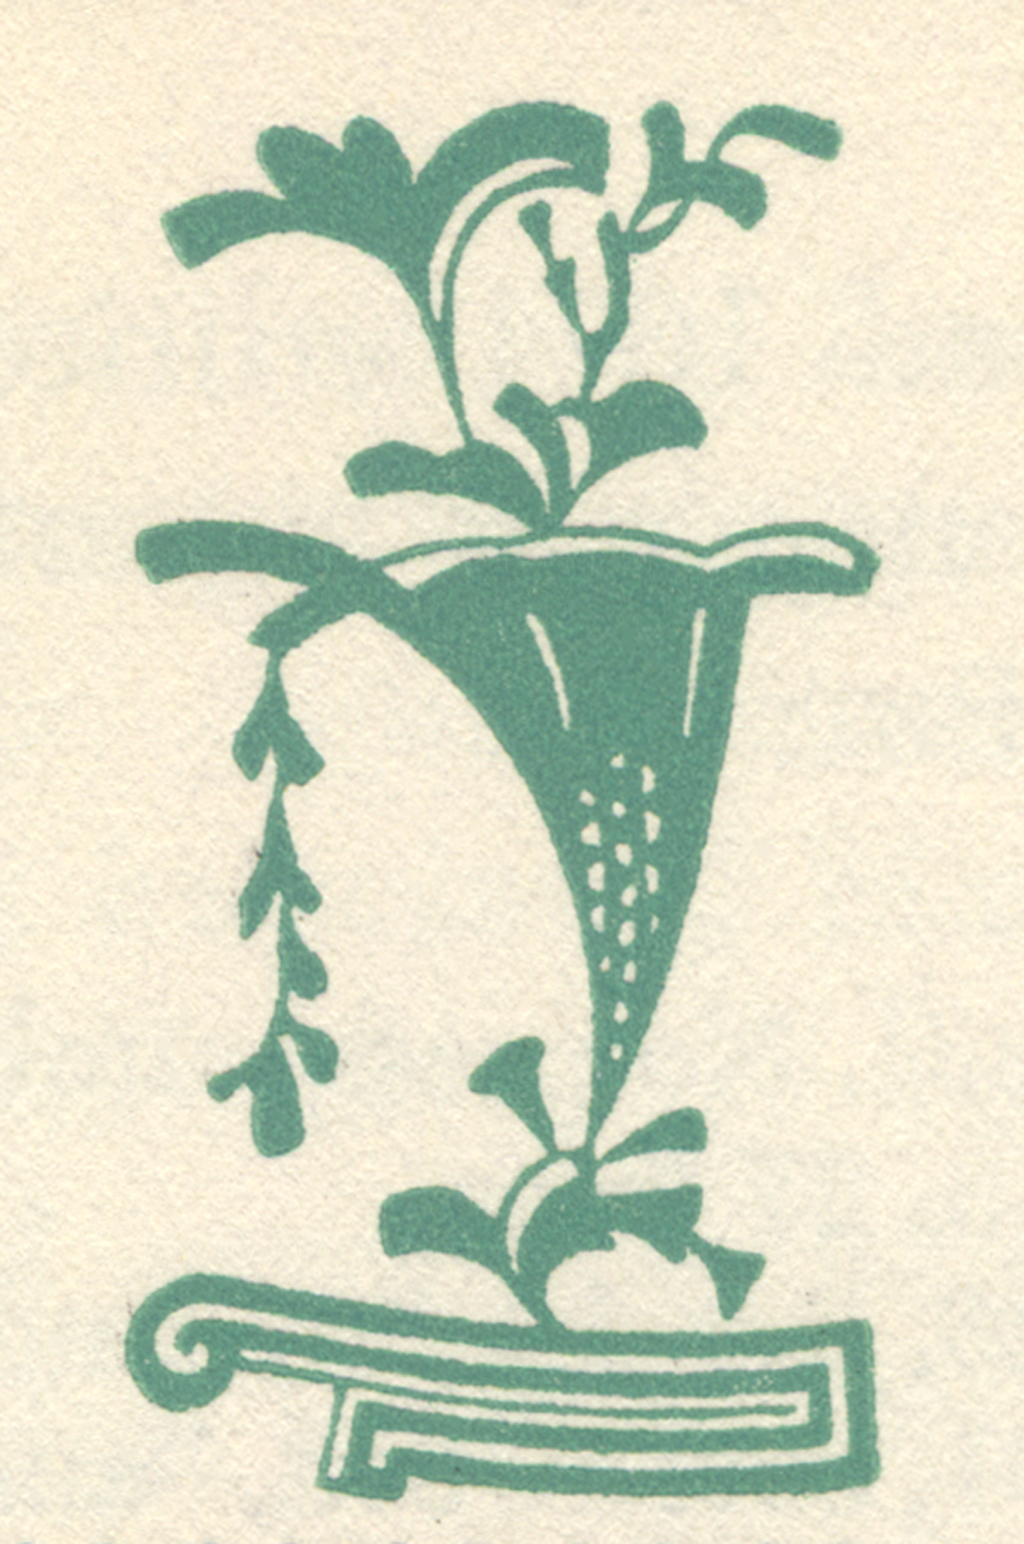 "Right ornament from ""The Court of Appeals"" title in The New Colophon vol. II, part 8 (February 1950). Design by W.A. Dwiggins."